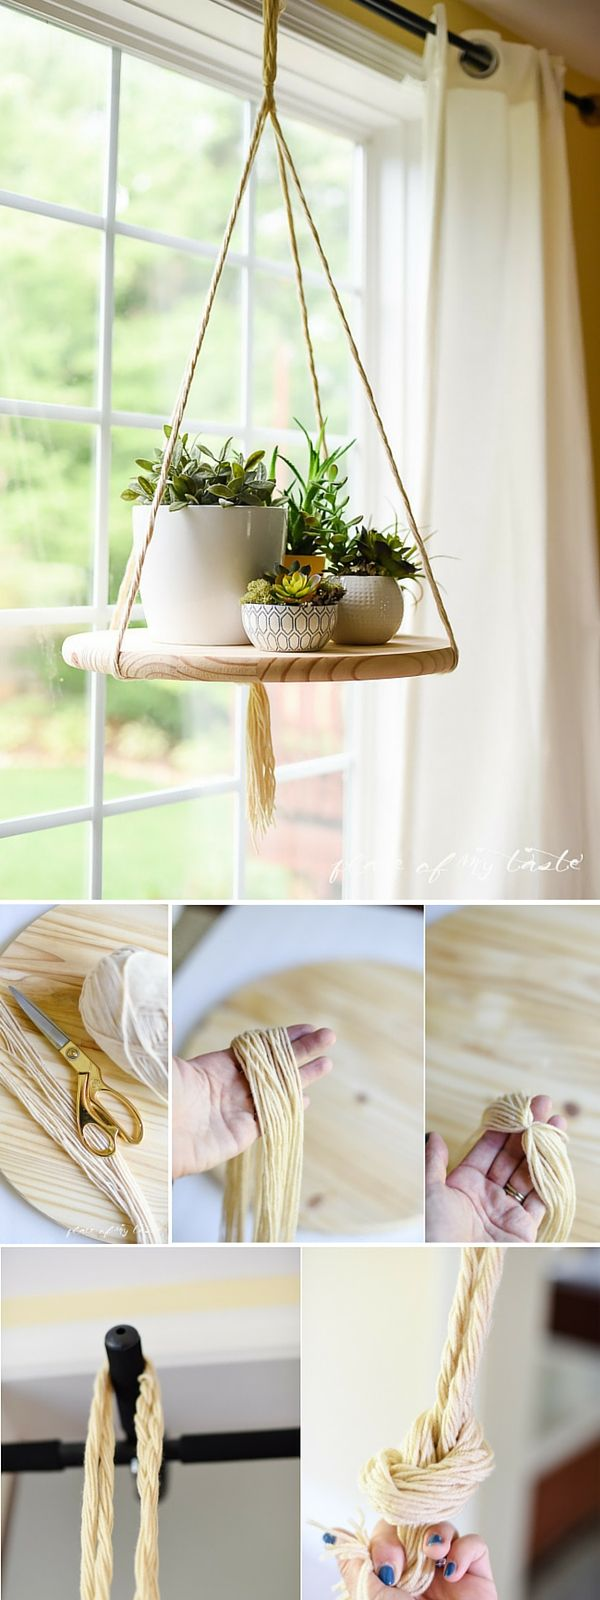 137052 best Crafts & DIY~ Home Decor ~ Gardening images on Pinterest ...